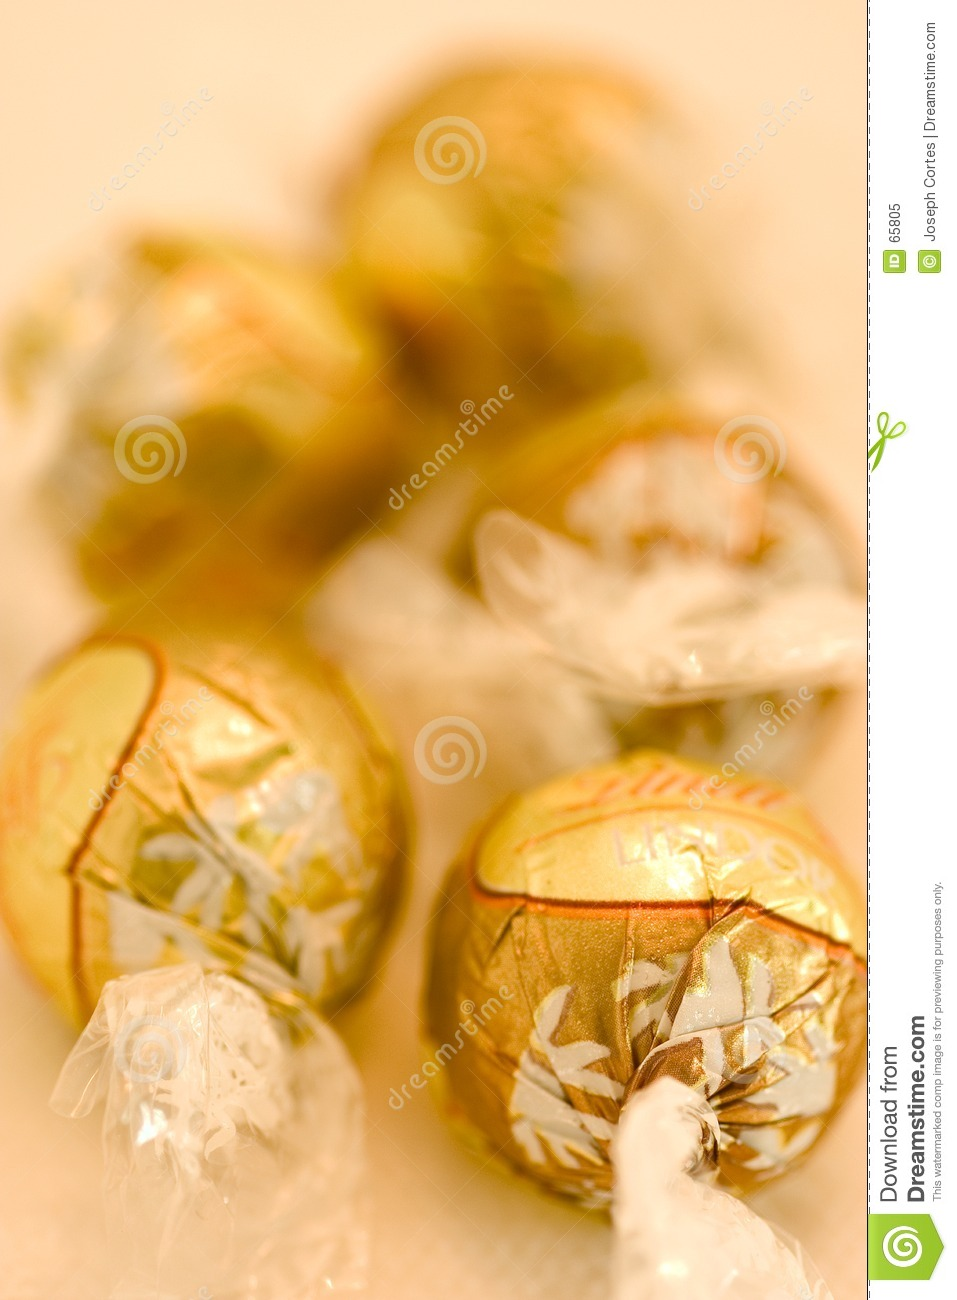 Gold Wrap Chocolate Candy Royalty Free Stock Photo Image